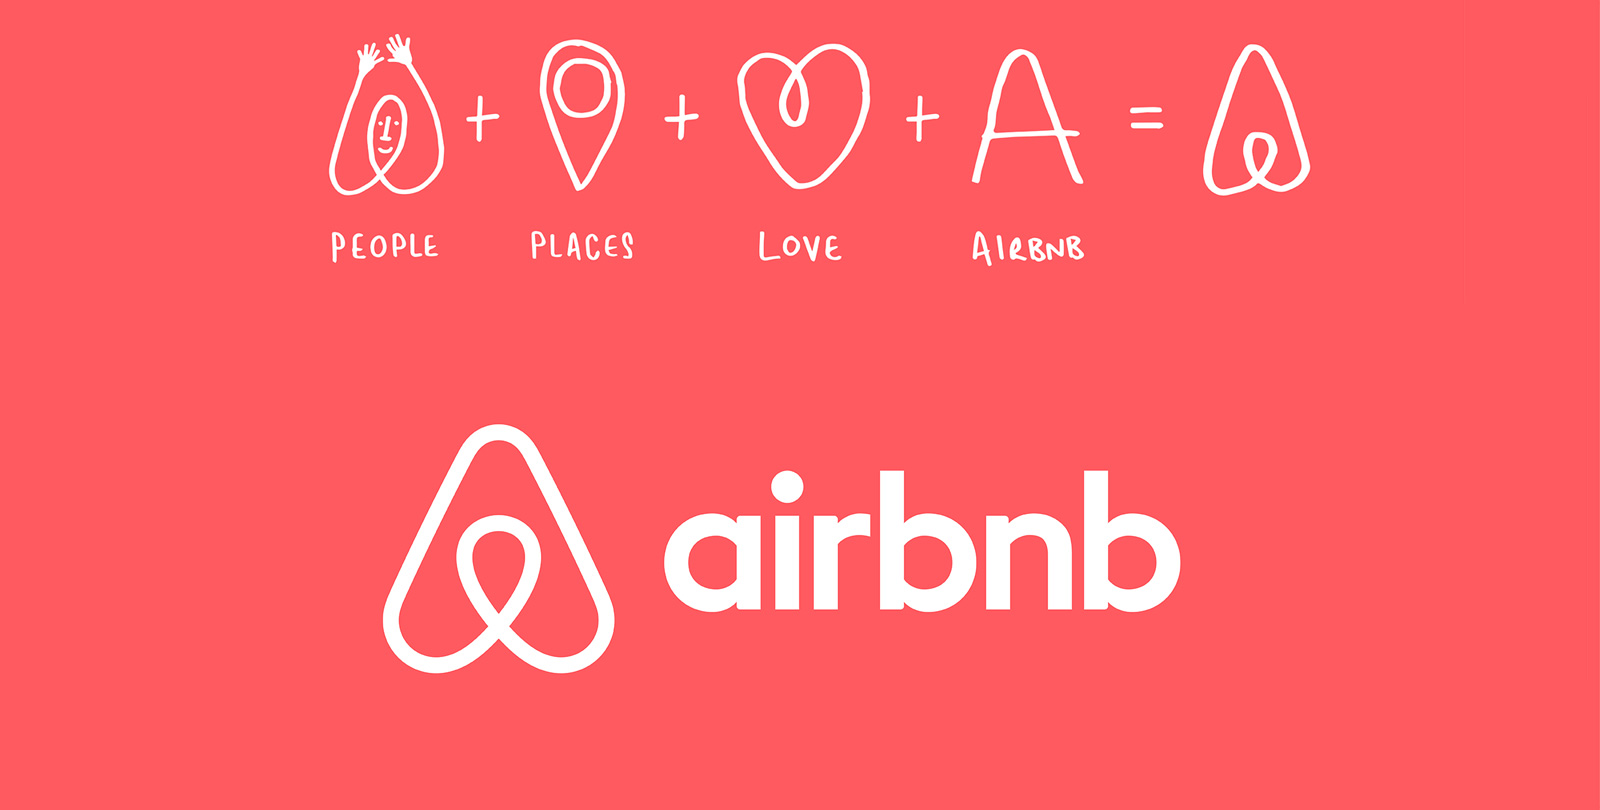 airbnb office singapore. Picture Credit: Airbnb Office Singapore